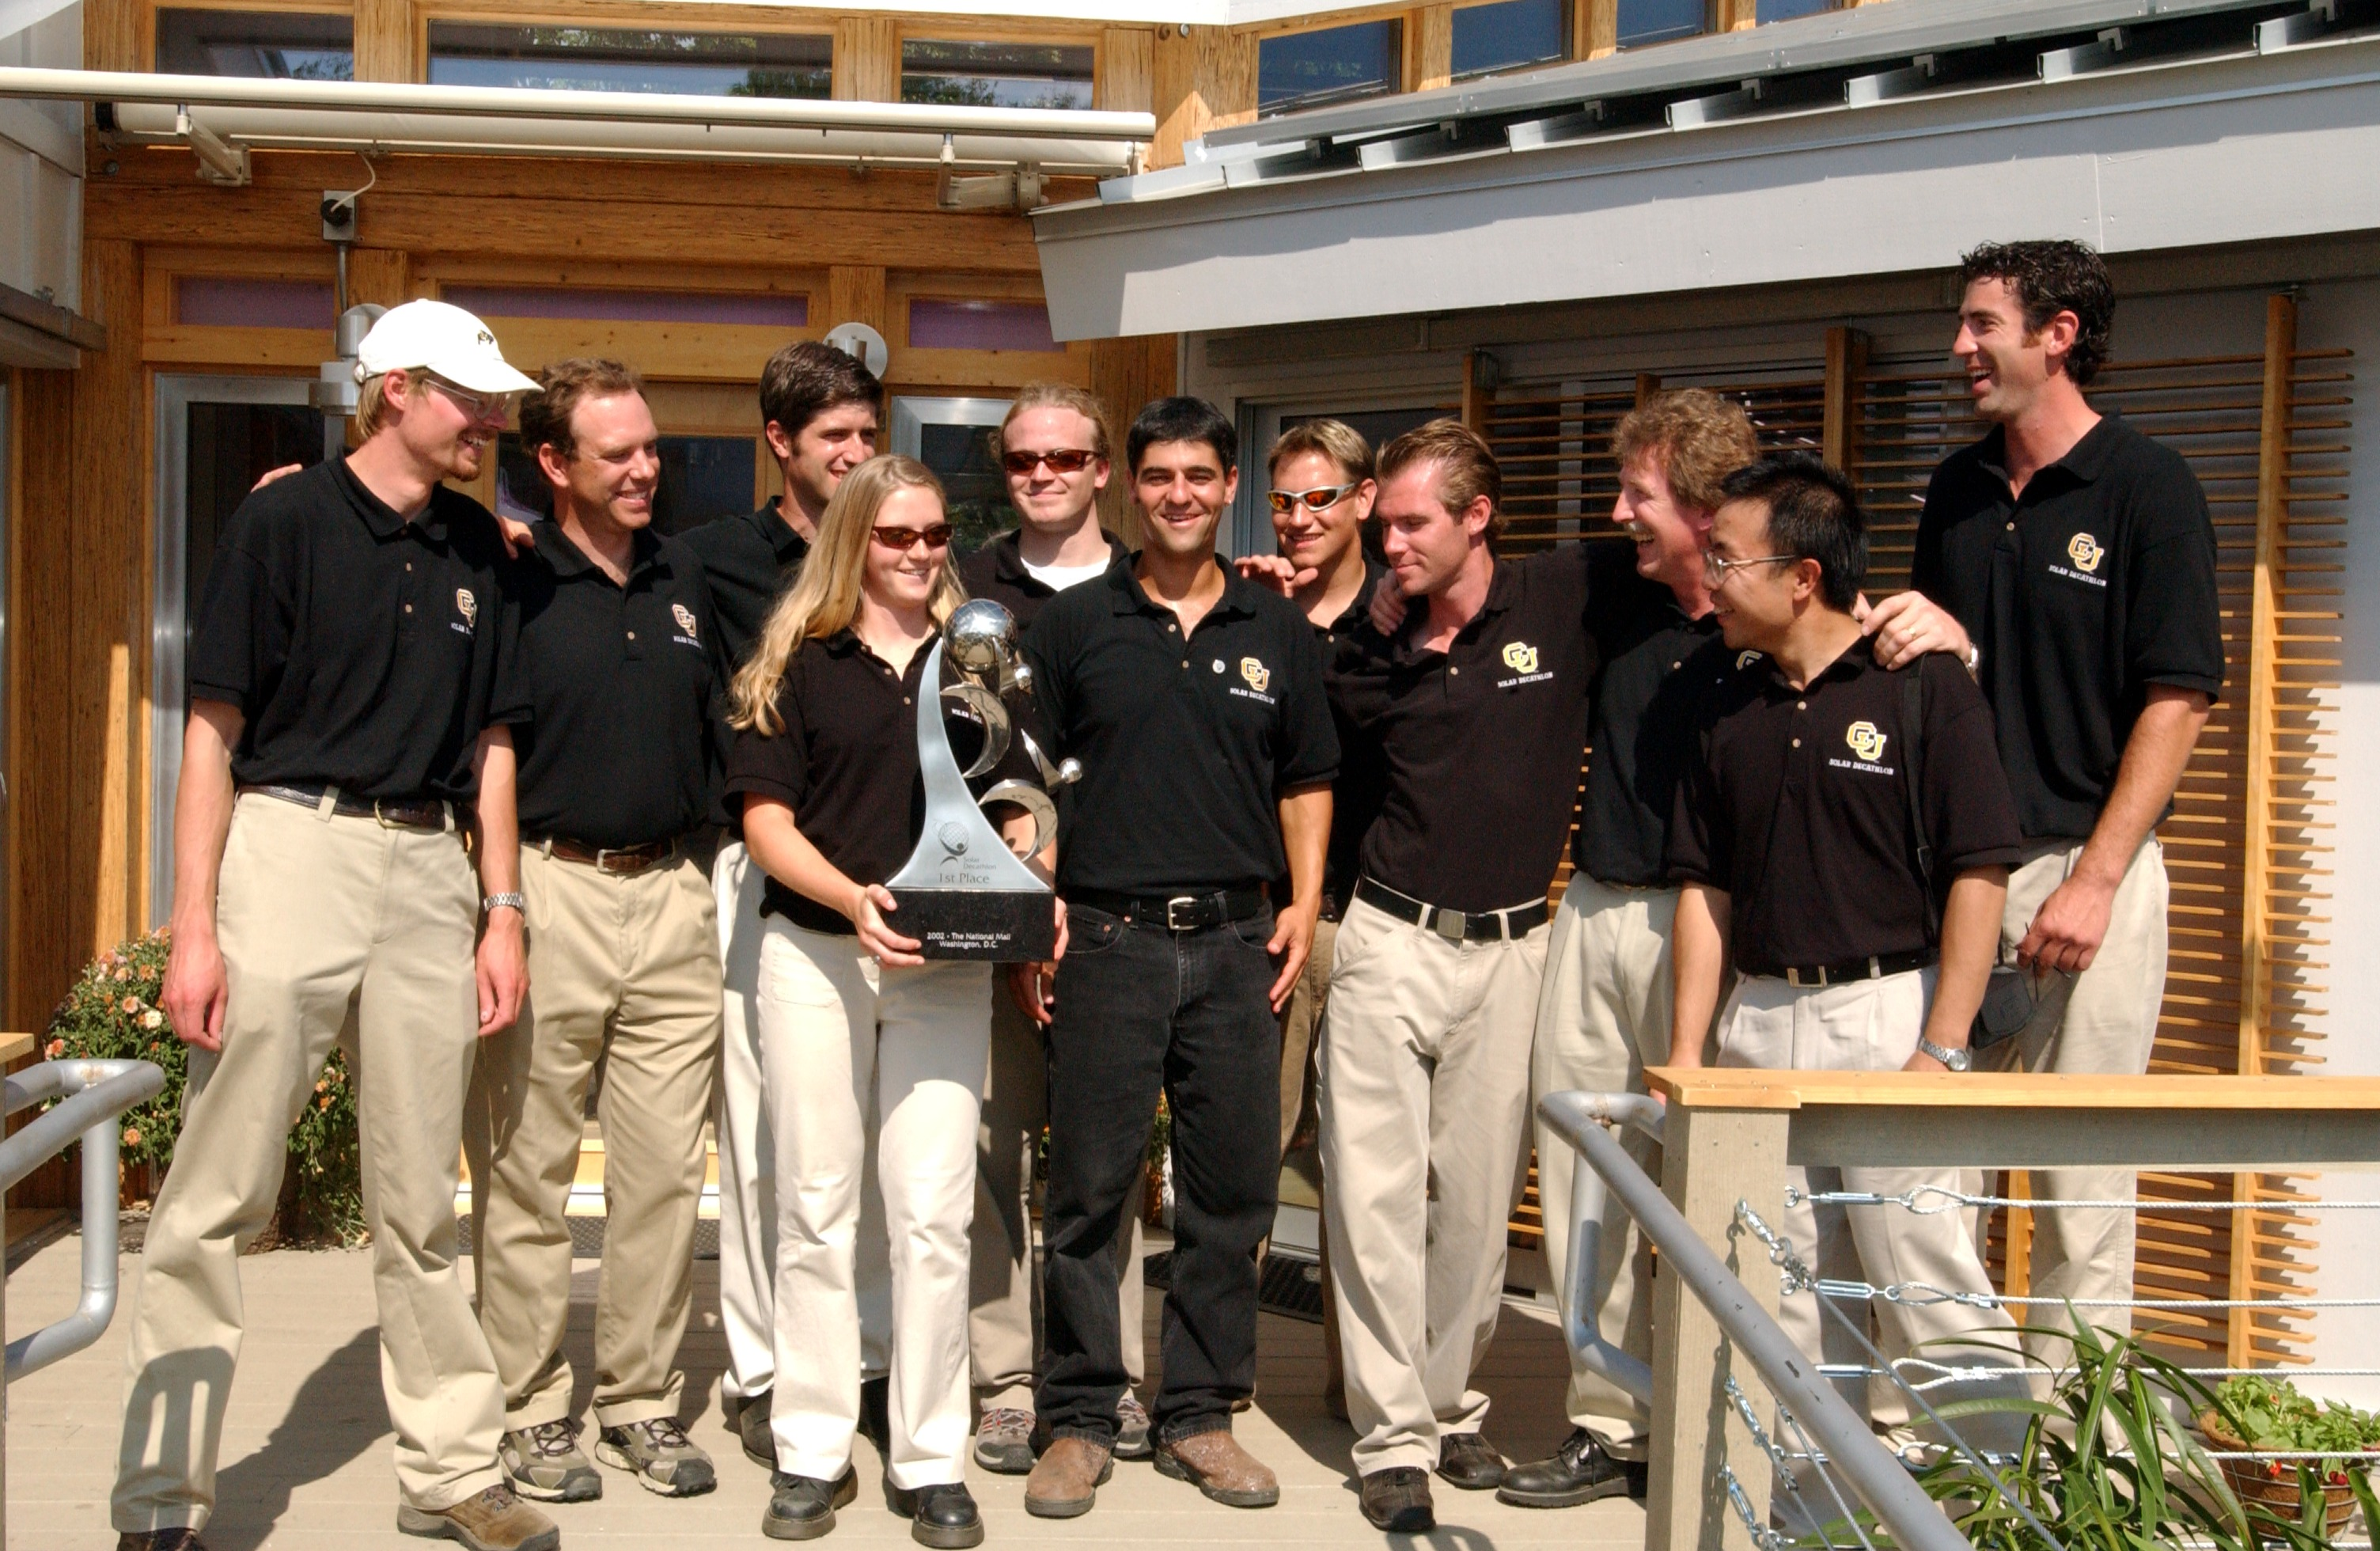 Photo of a group of men standing around a woman who is holding a large trophy.